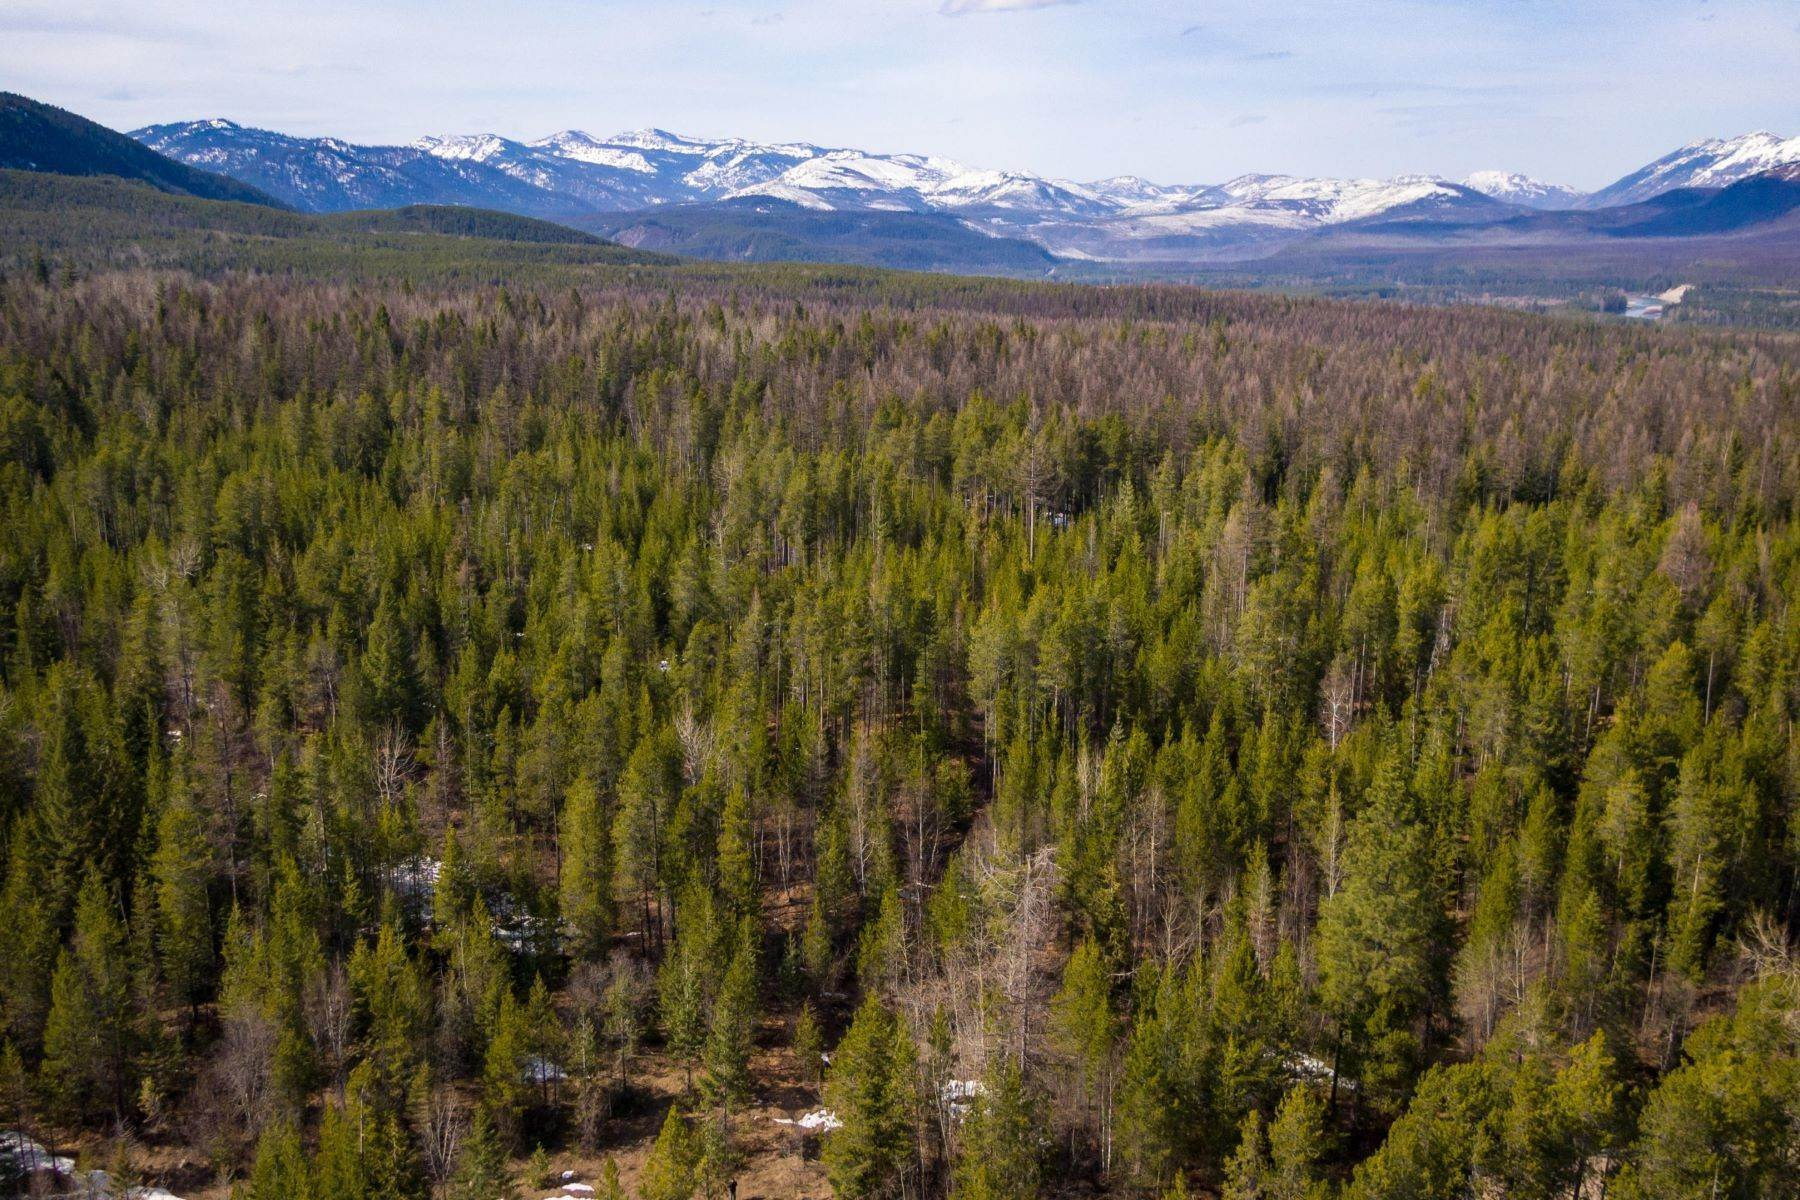 Property for Sale at Glacier Park Views Nhn Teakettle Road Columbia Falls, Montana 59912 United States